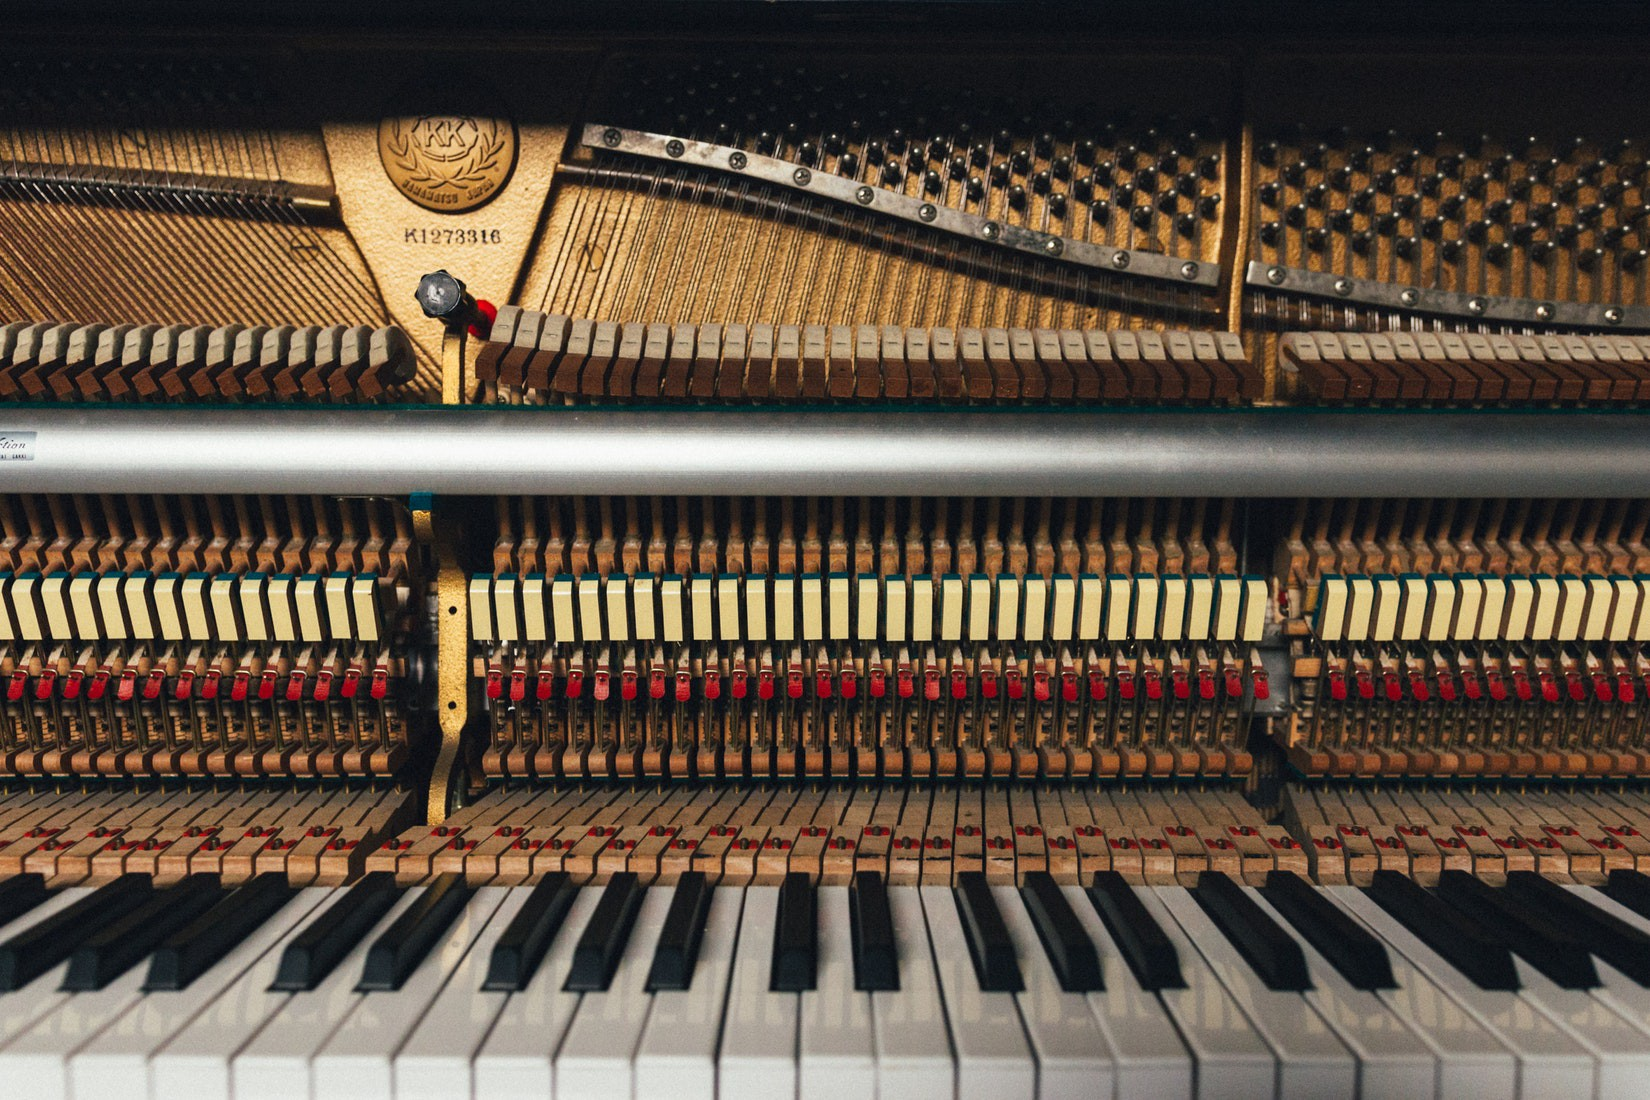 How to Make Information Graphics With A Piano